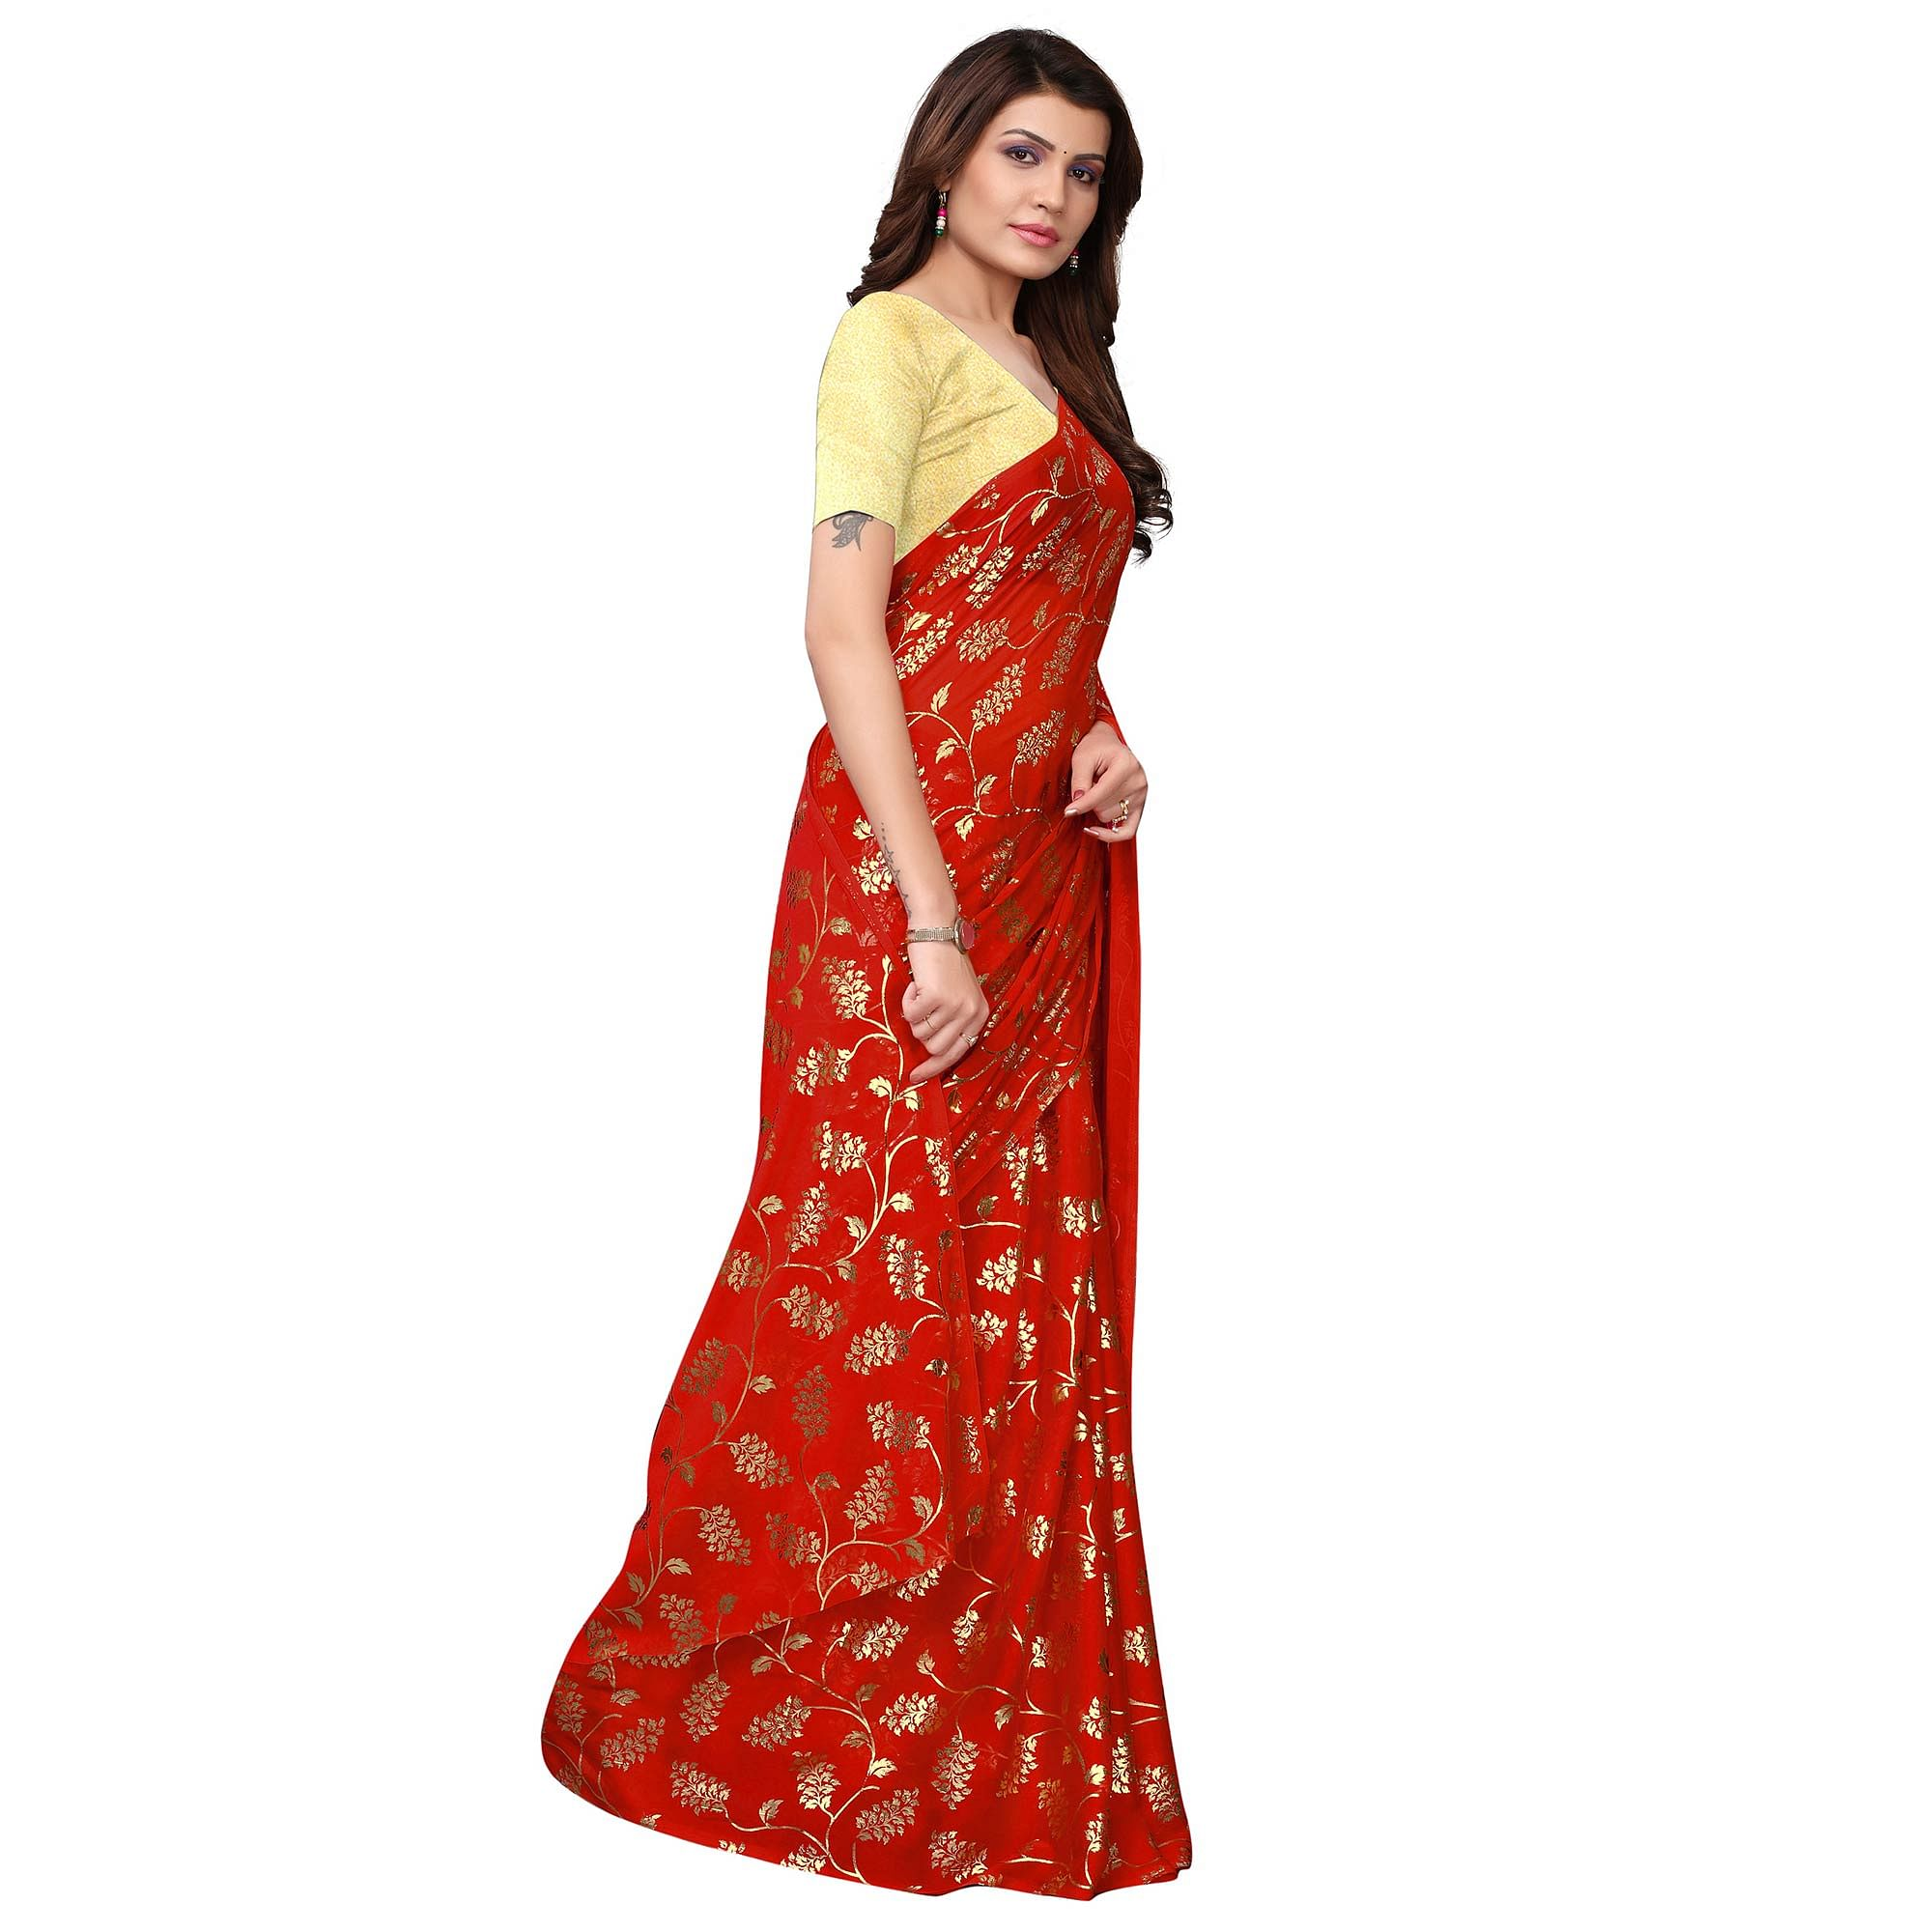 Entrancing Red Colored Party Wear Foil Printed Georgette Saree